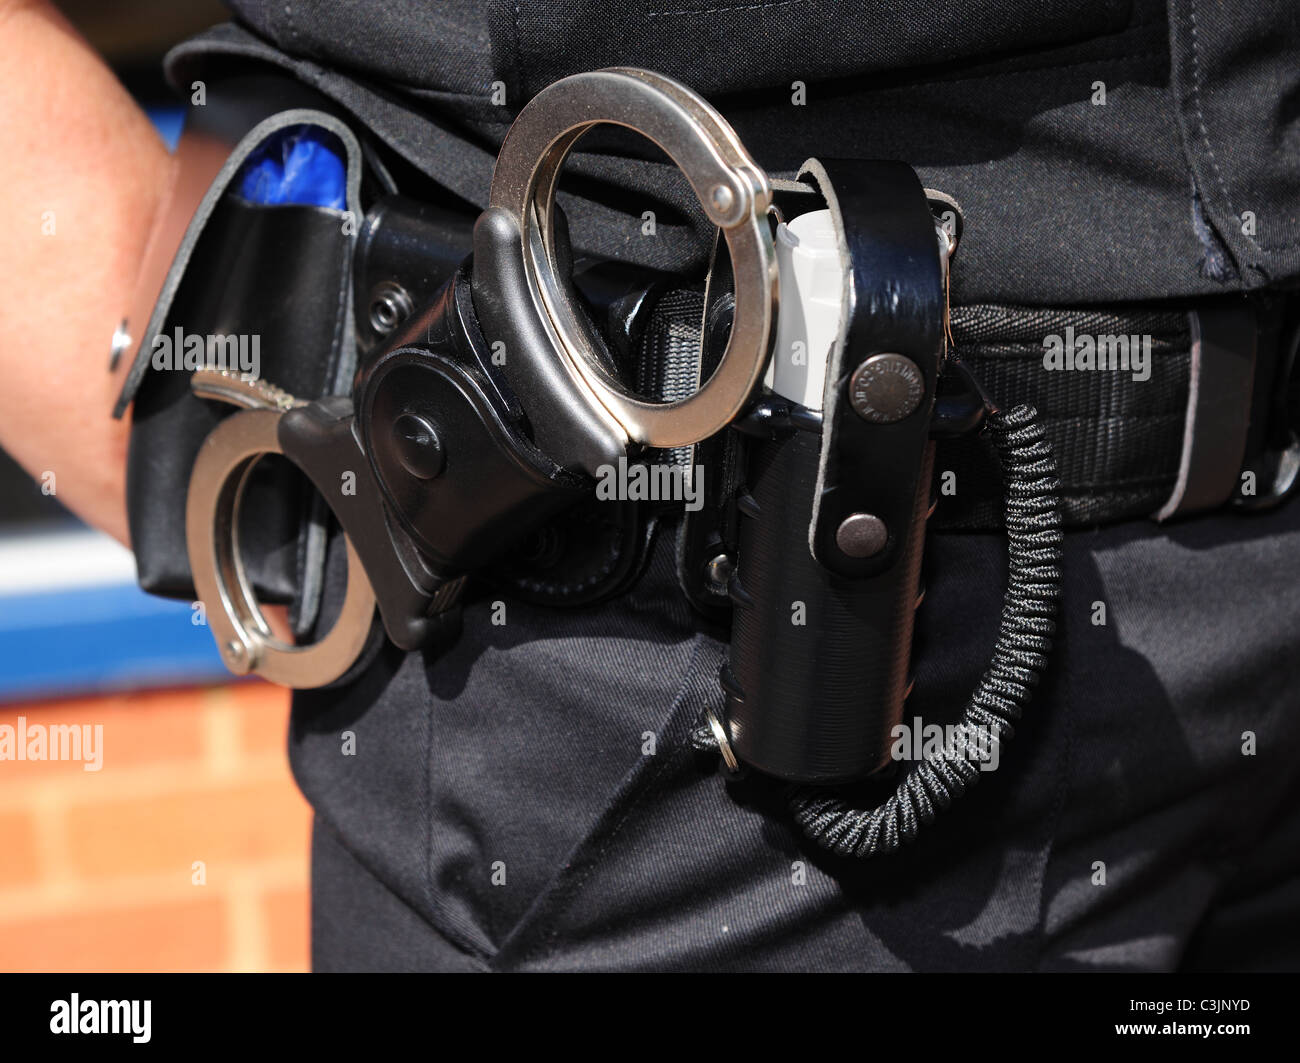 Detail of police utility belt worn by british police, showing handcuffs and CS gas spray. - Stock Image